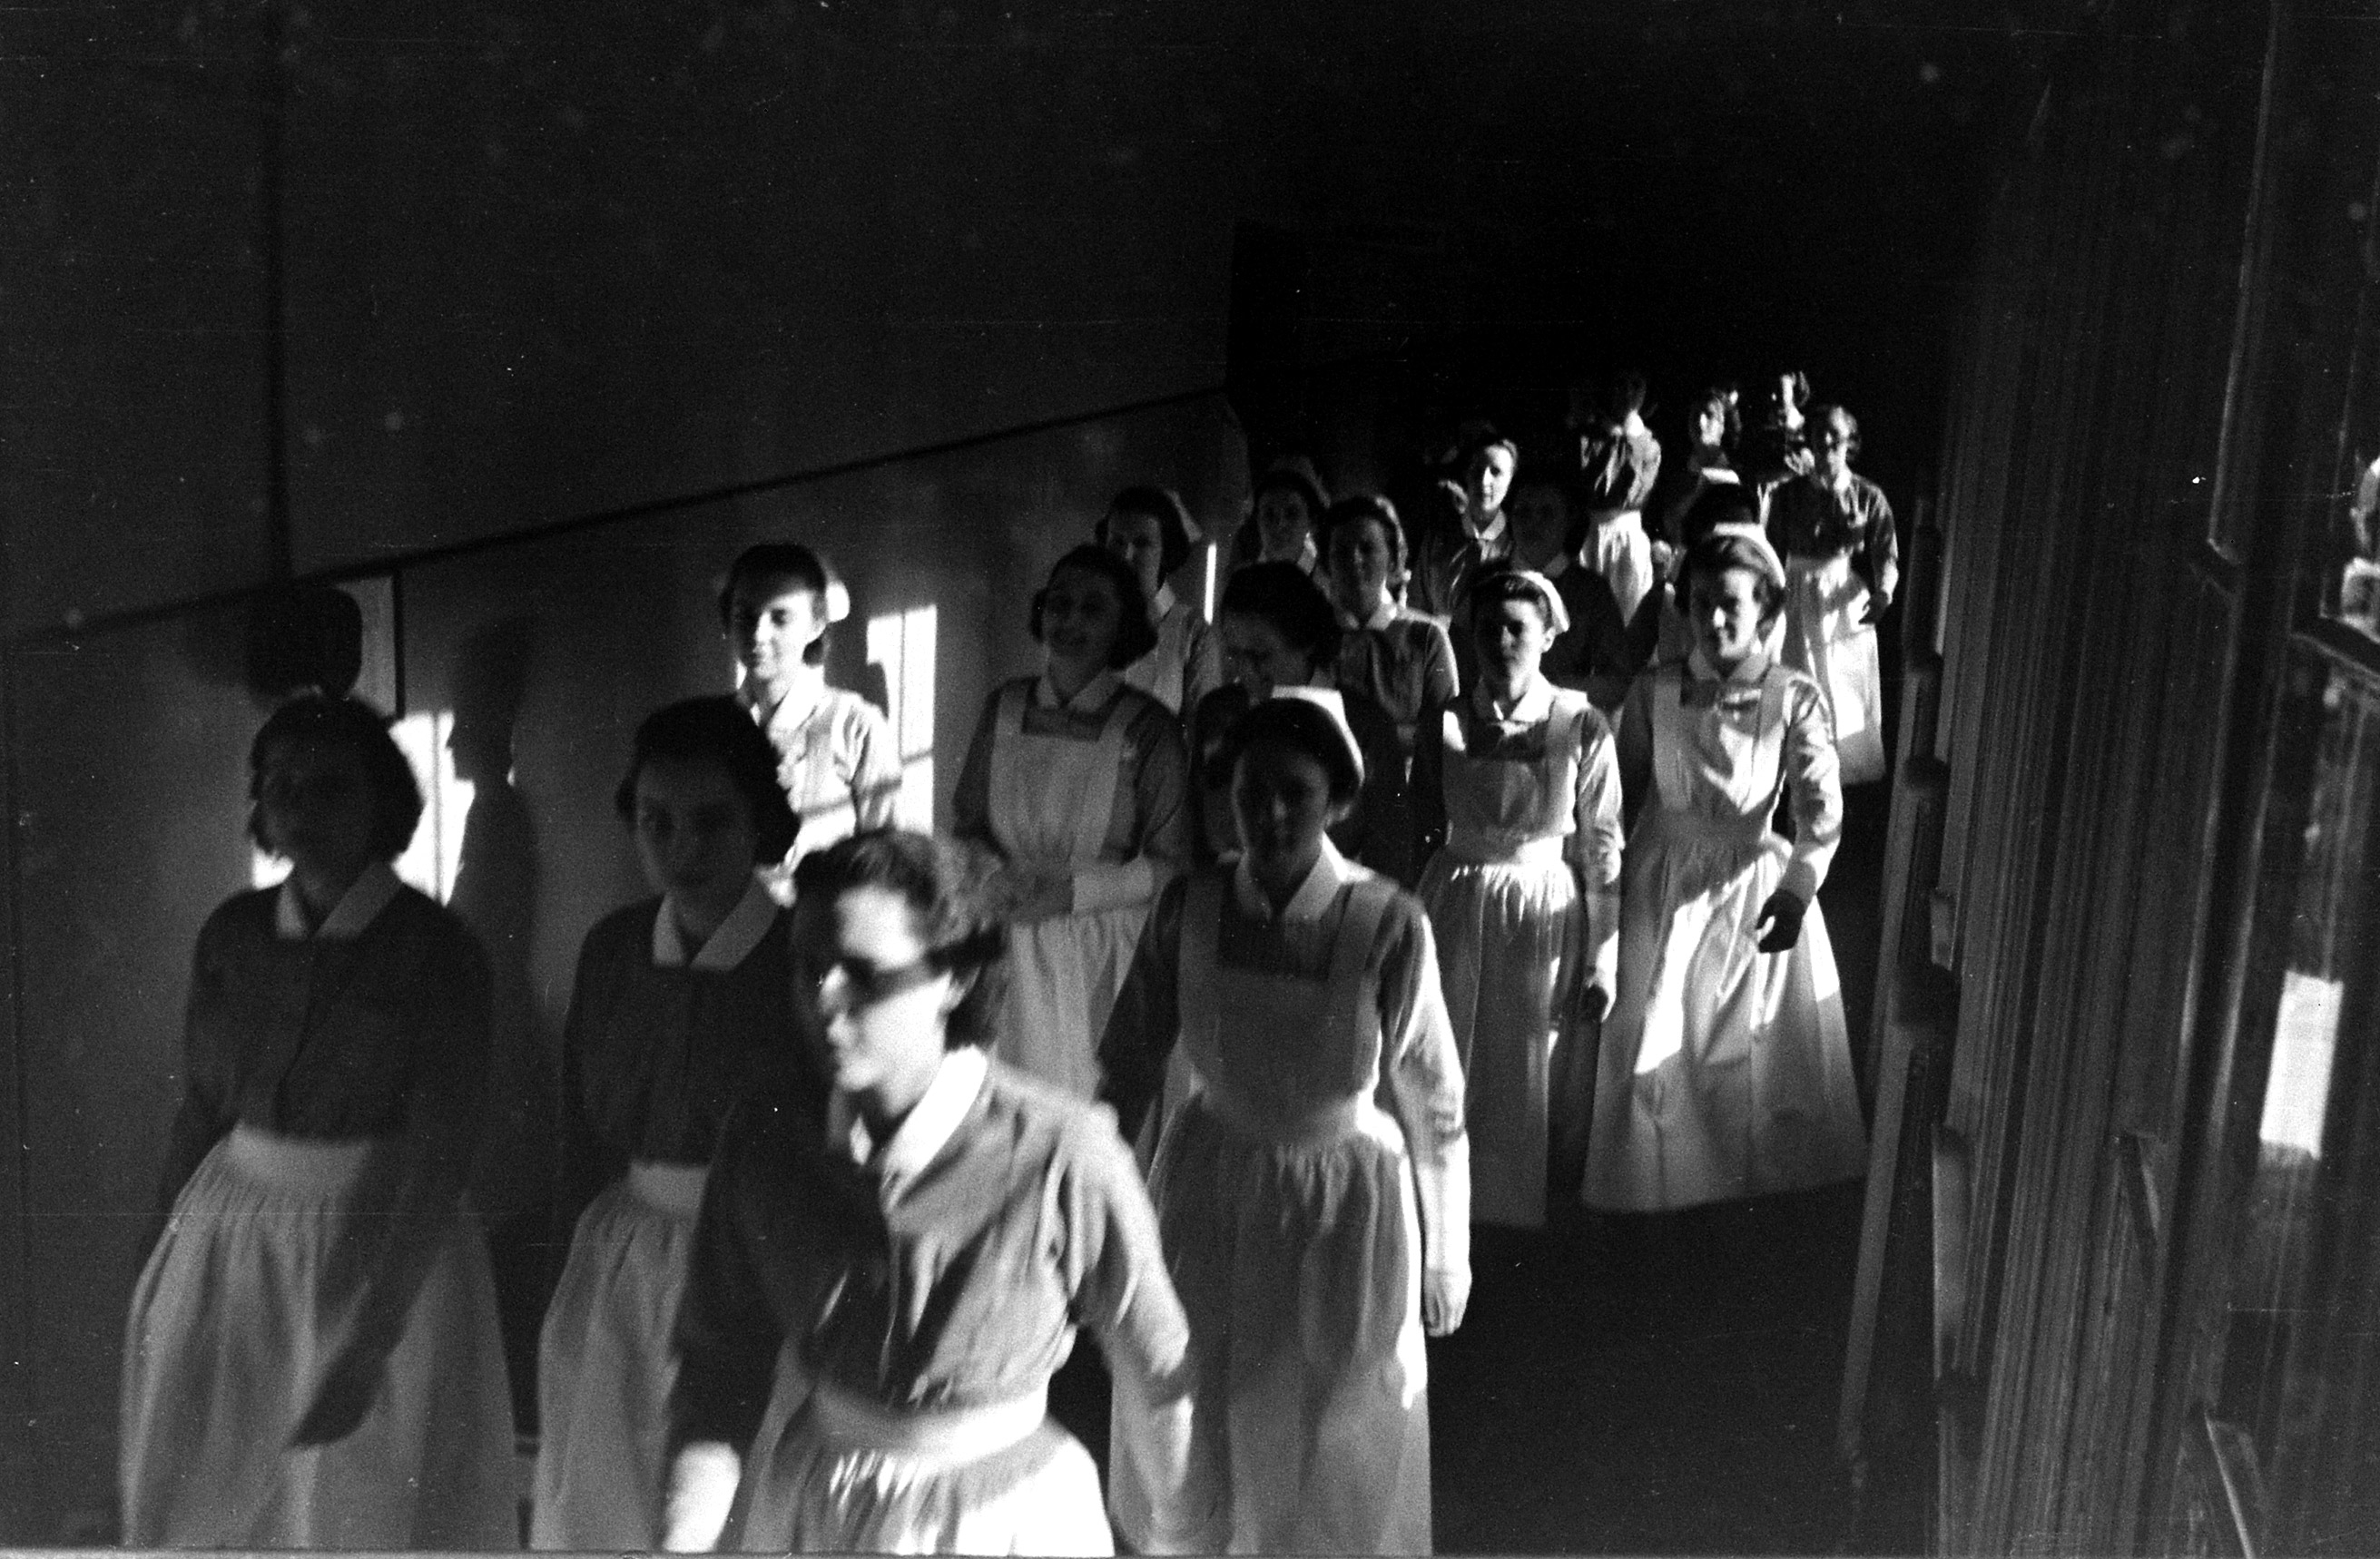 <b>Caption from LIFE.</b> Like nuns, the young student nurses march down the main corridor of the Roosevelt Hospital on their way from classrooms to wards.